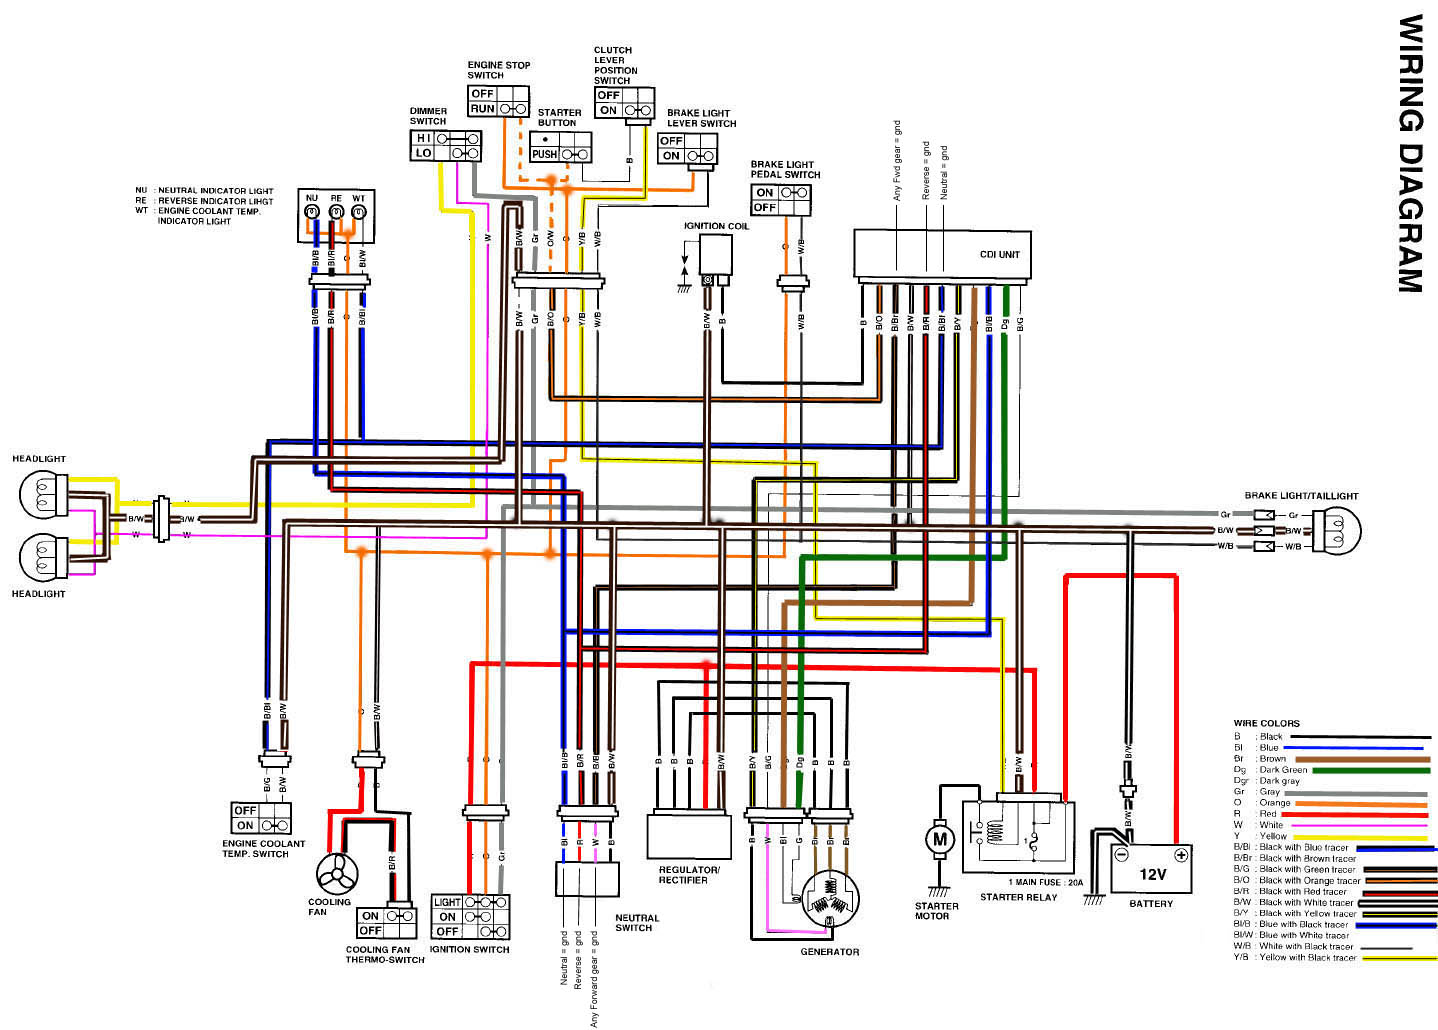 colored wire diagram suzuki z forum z forums click image for larger version z400 color wiring diagram jpg views 26928 size 218 3